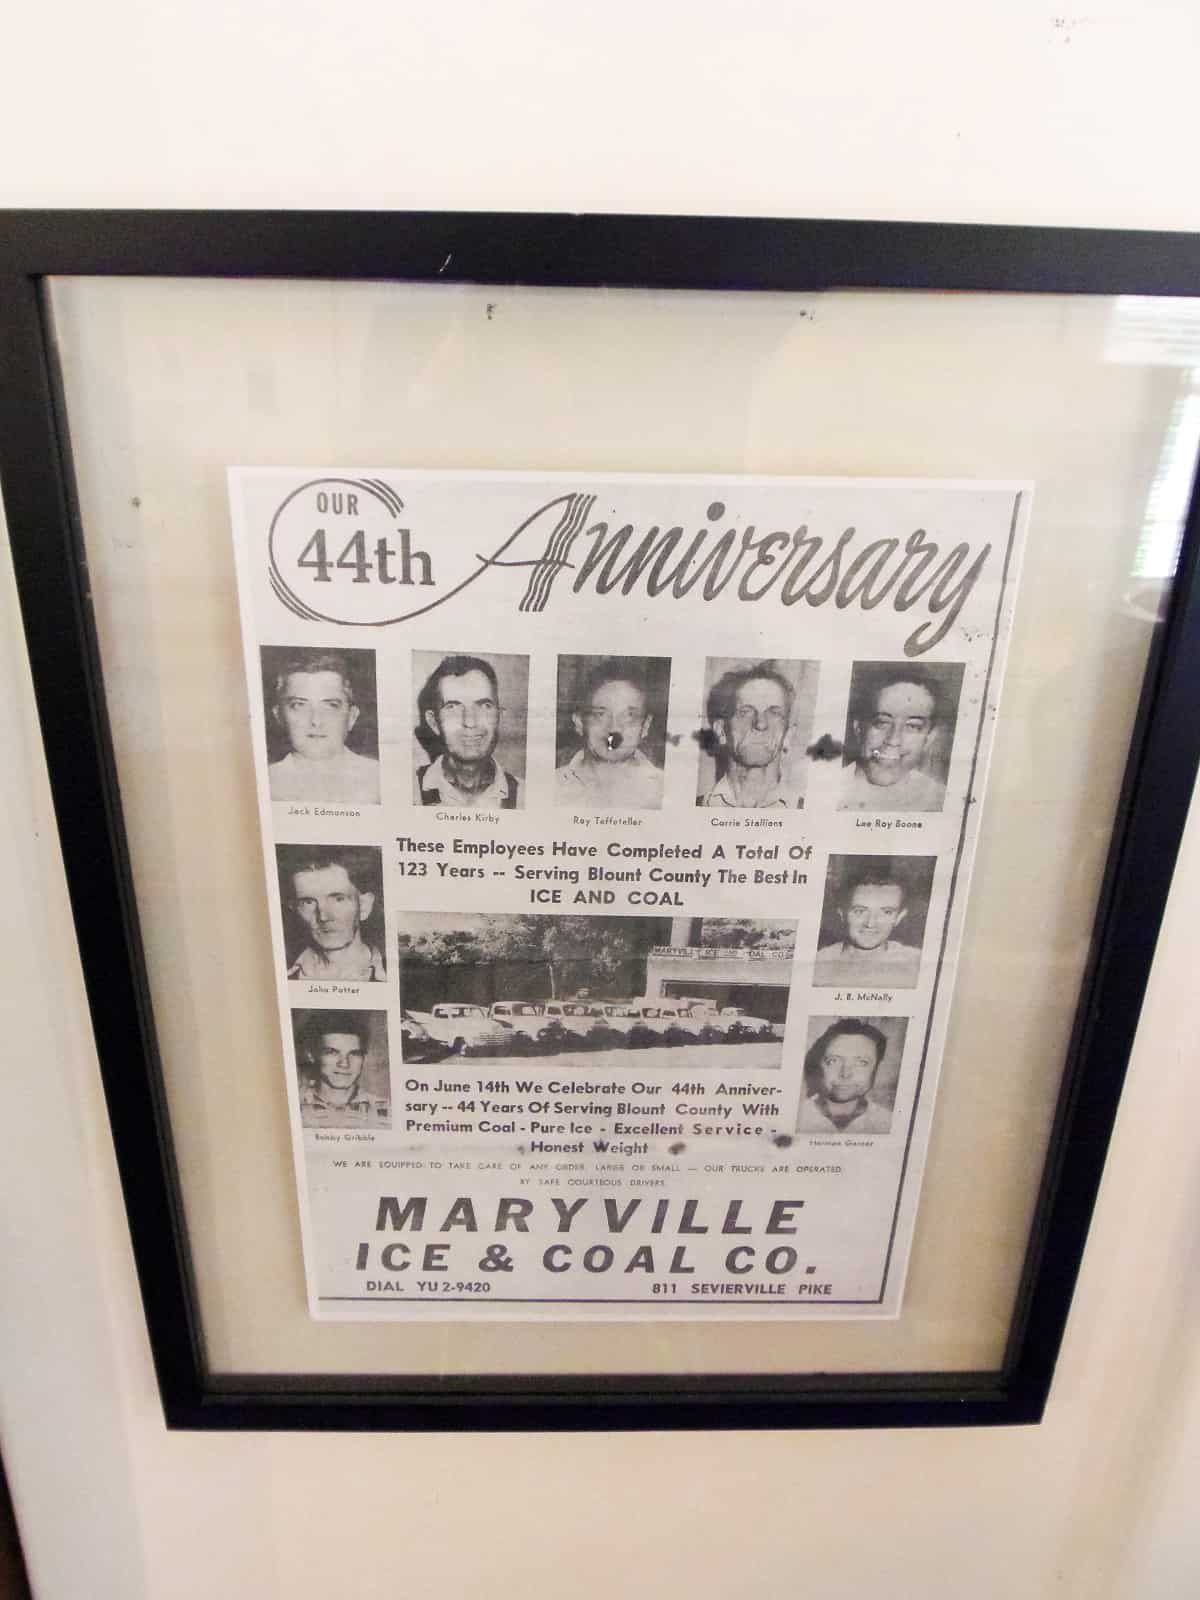 Maryville Ice & Coal 44th Anniversary Newspaper Advertisement